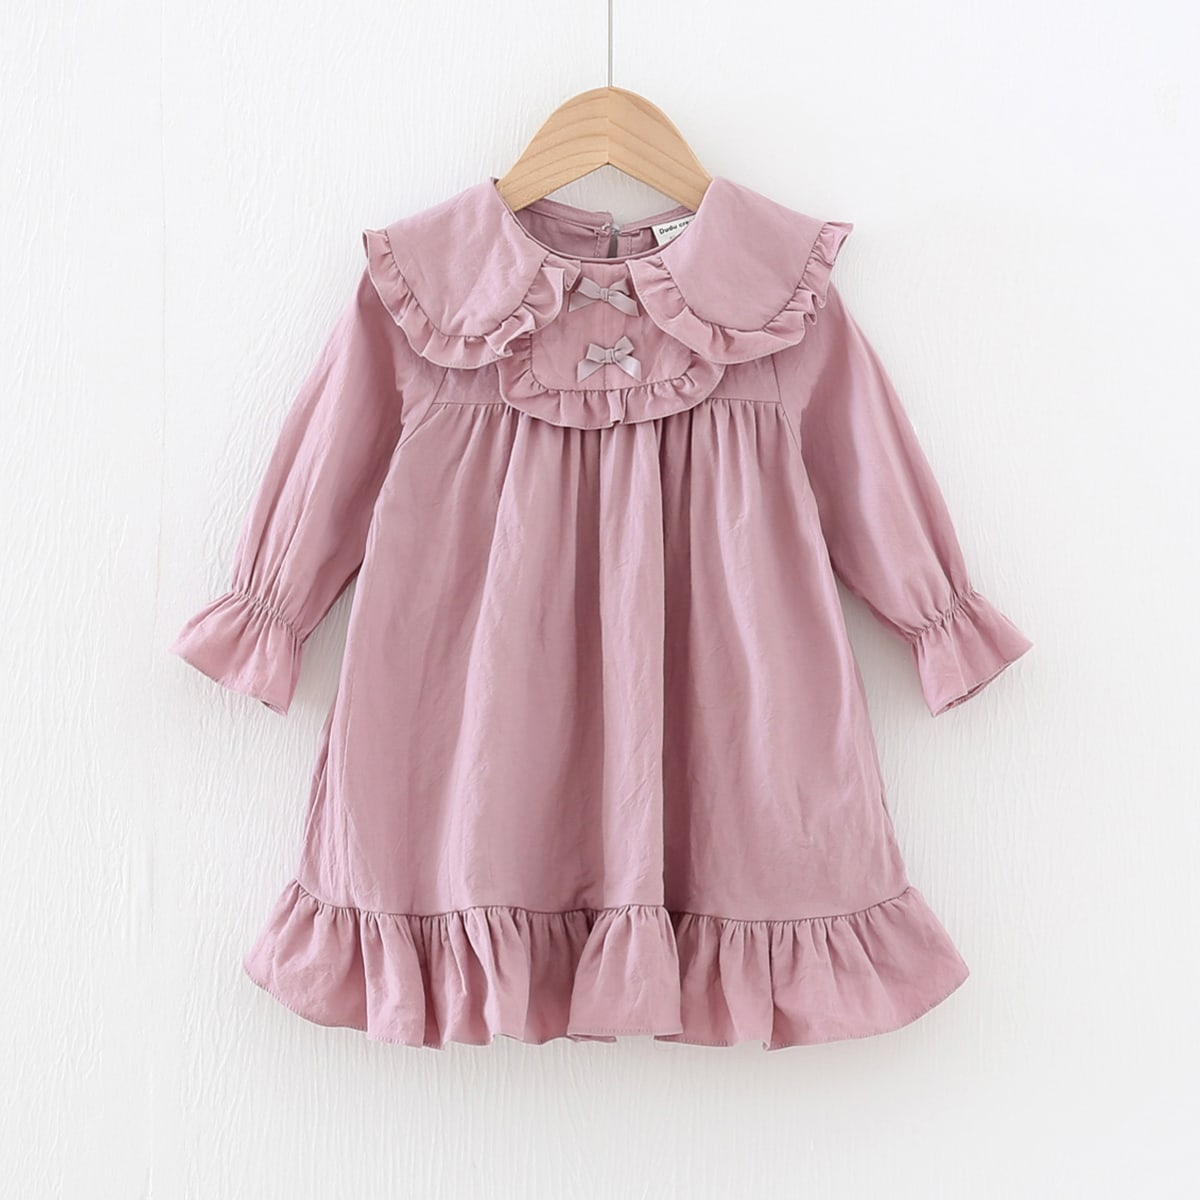 Toddler Girls Frill Bow Front Smock Dress